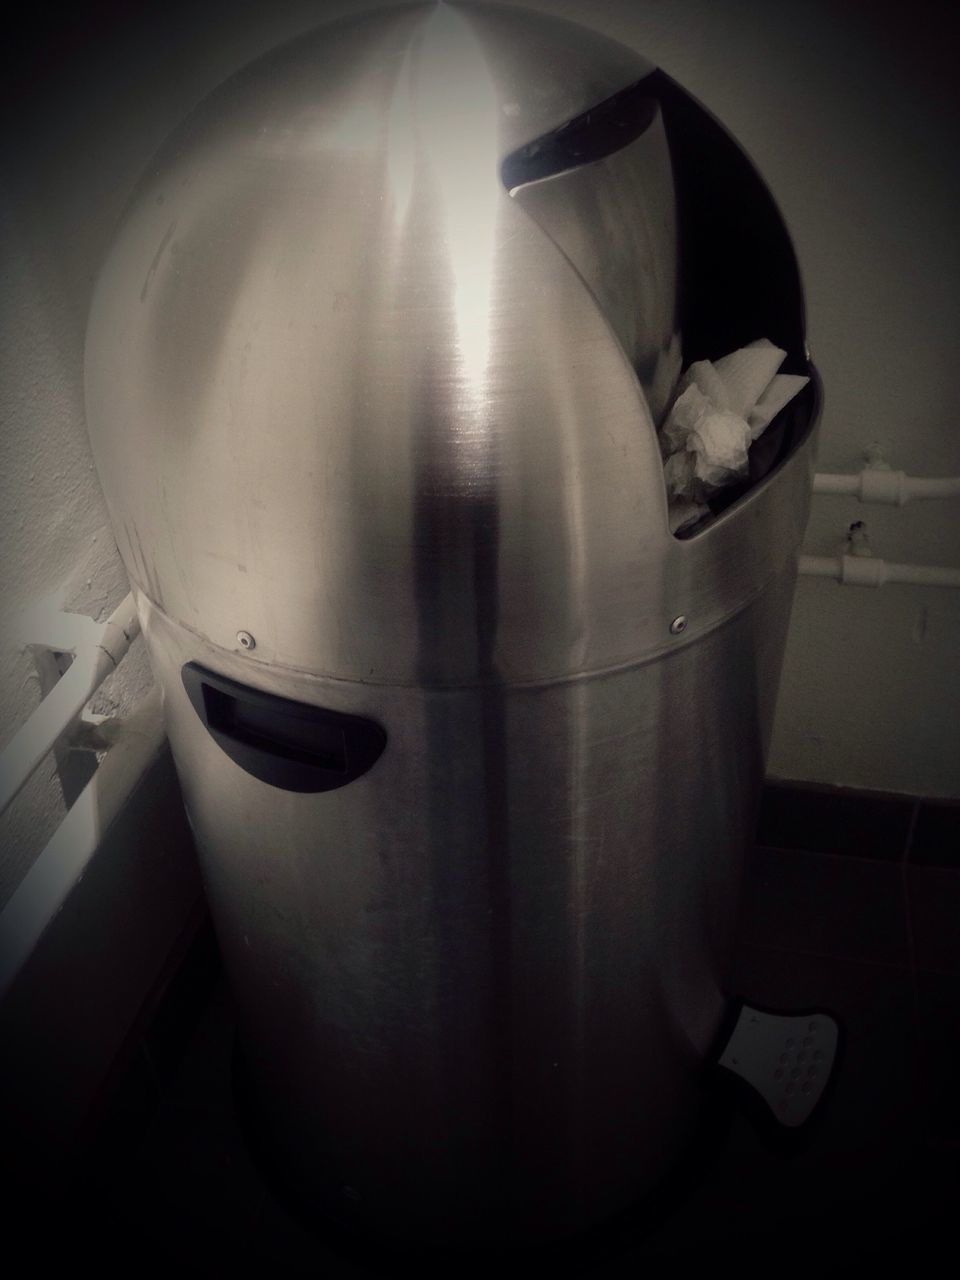 Close-Up Of Chrome Garbage Can In Public Restroom